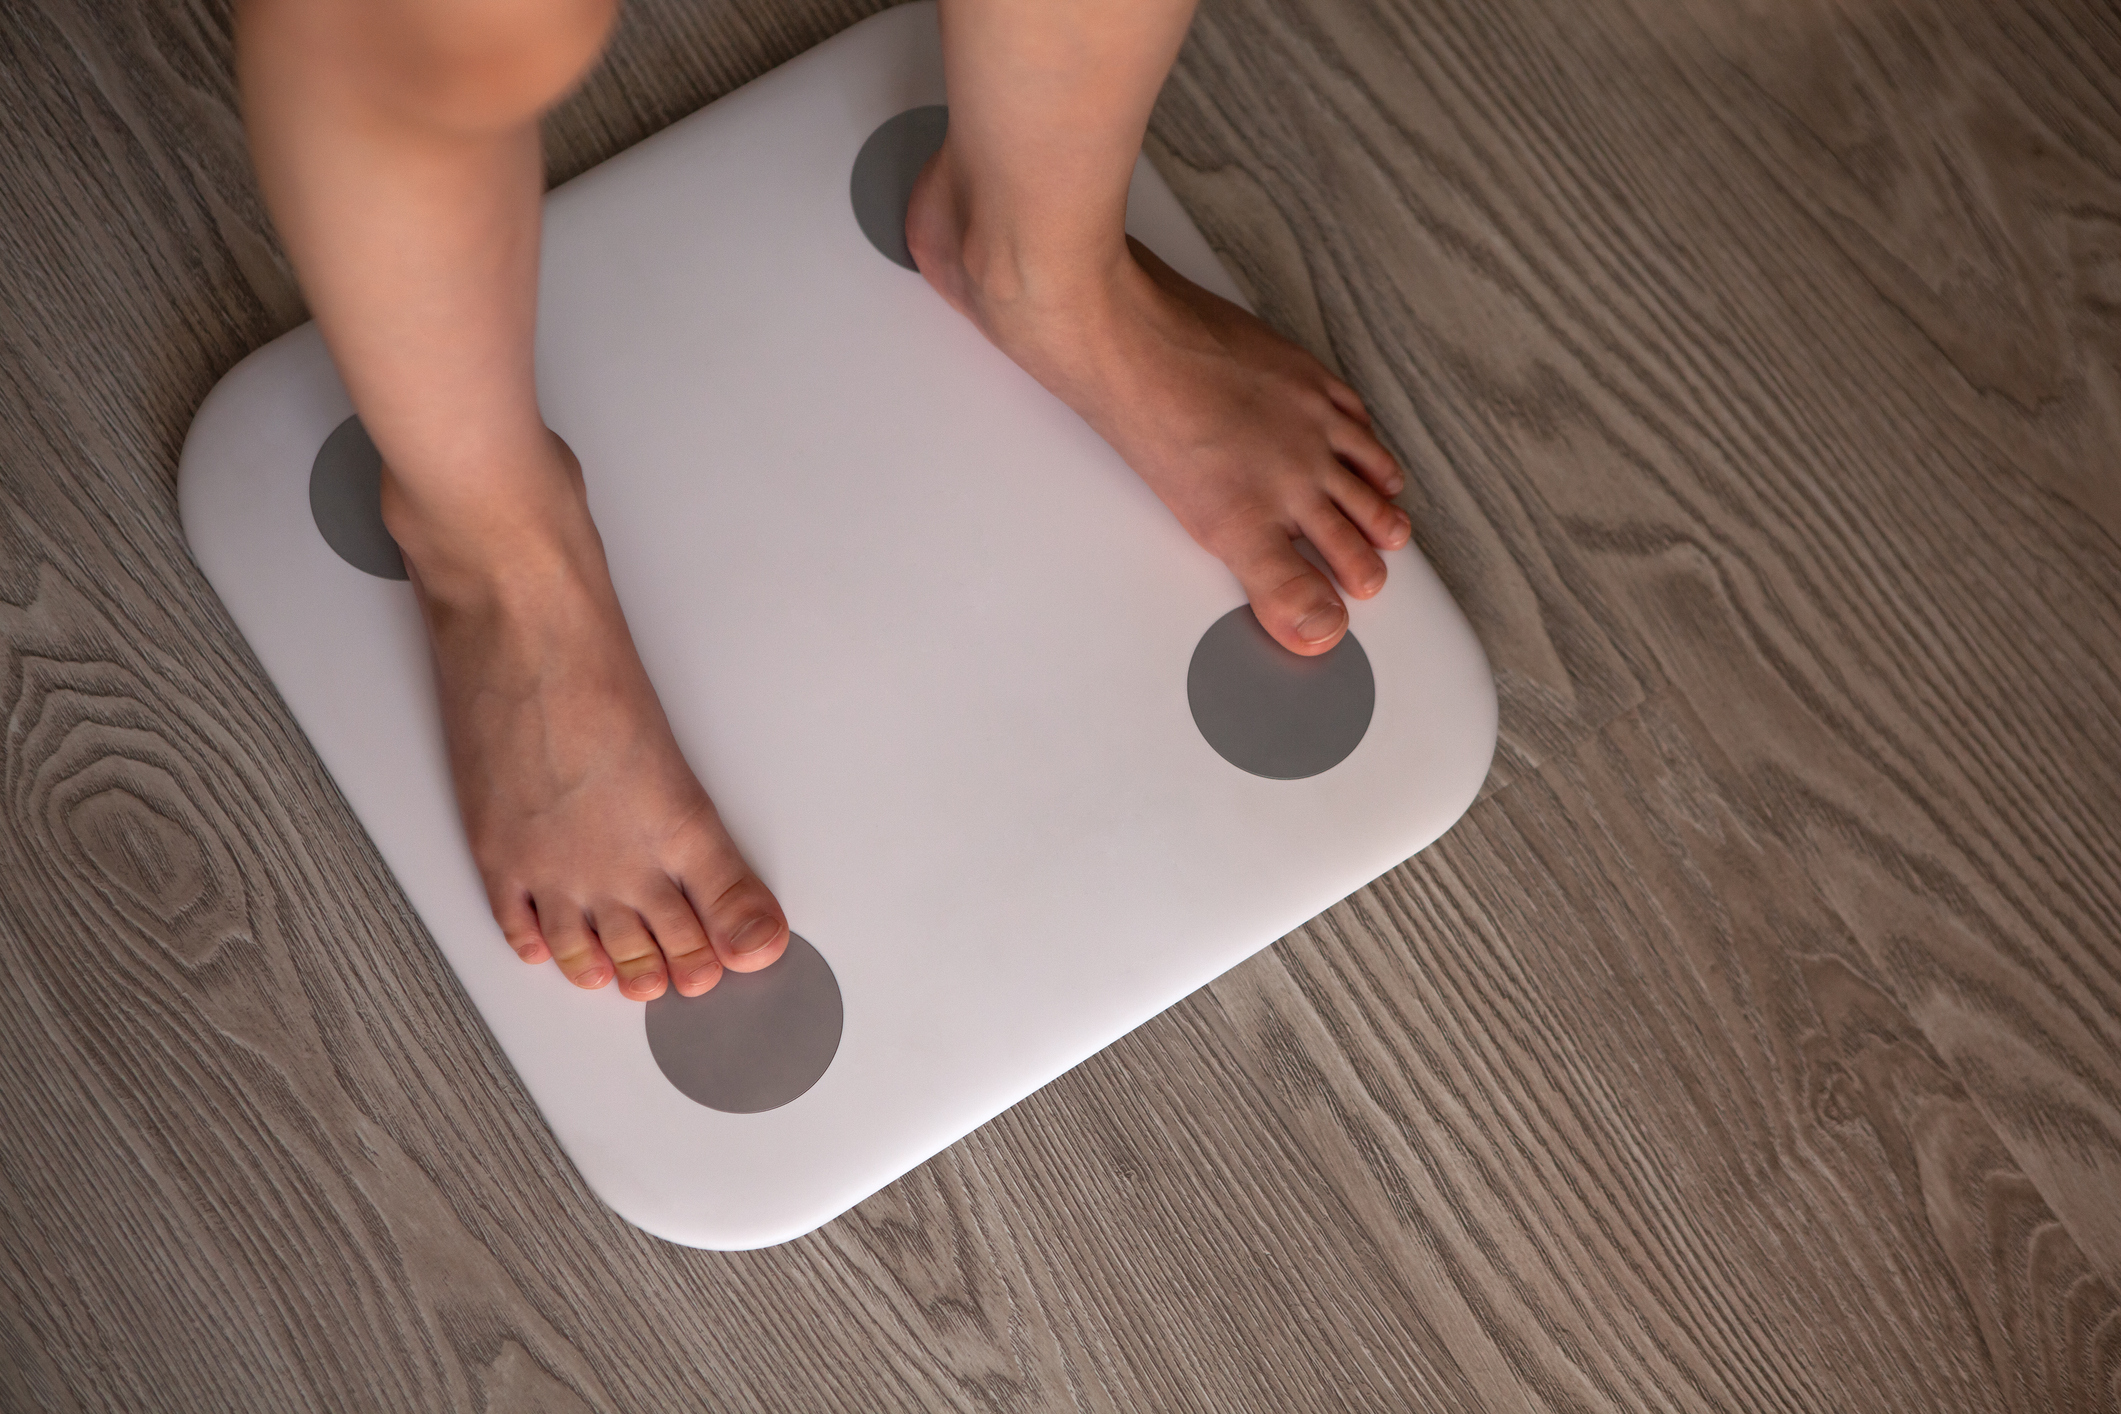 Kid girl or boy stands and weighs himself on white modern electronic smart scale. Scales stand on grey wooden floor. Only legs are visible. Concept of Internet of things, weight control, health.